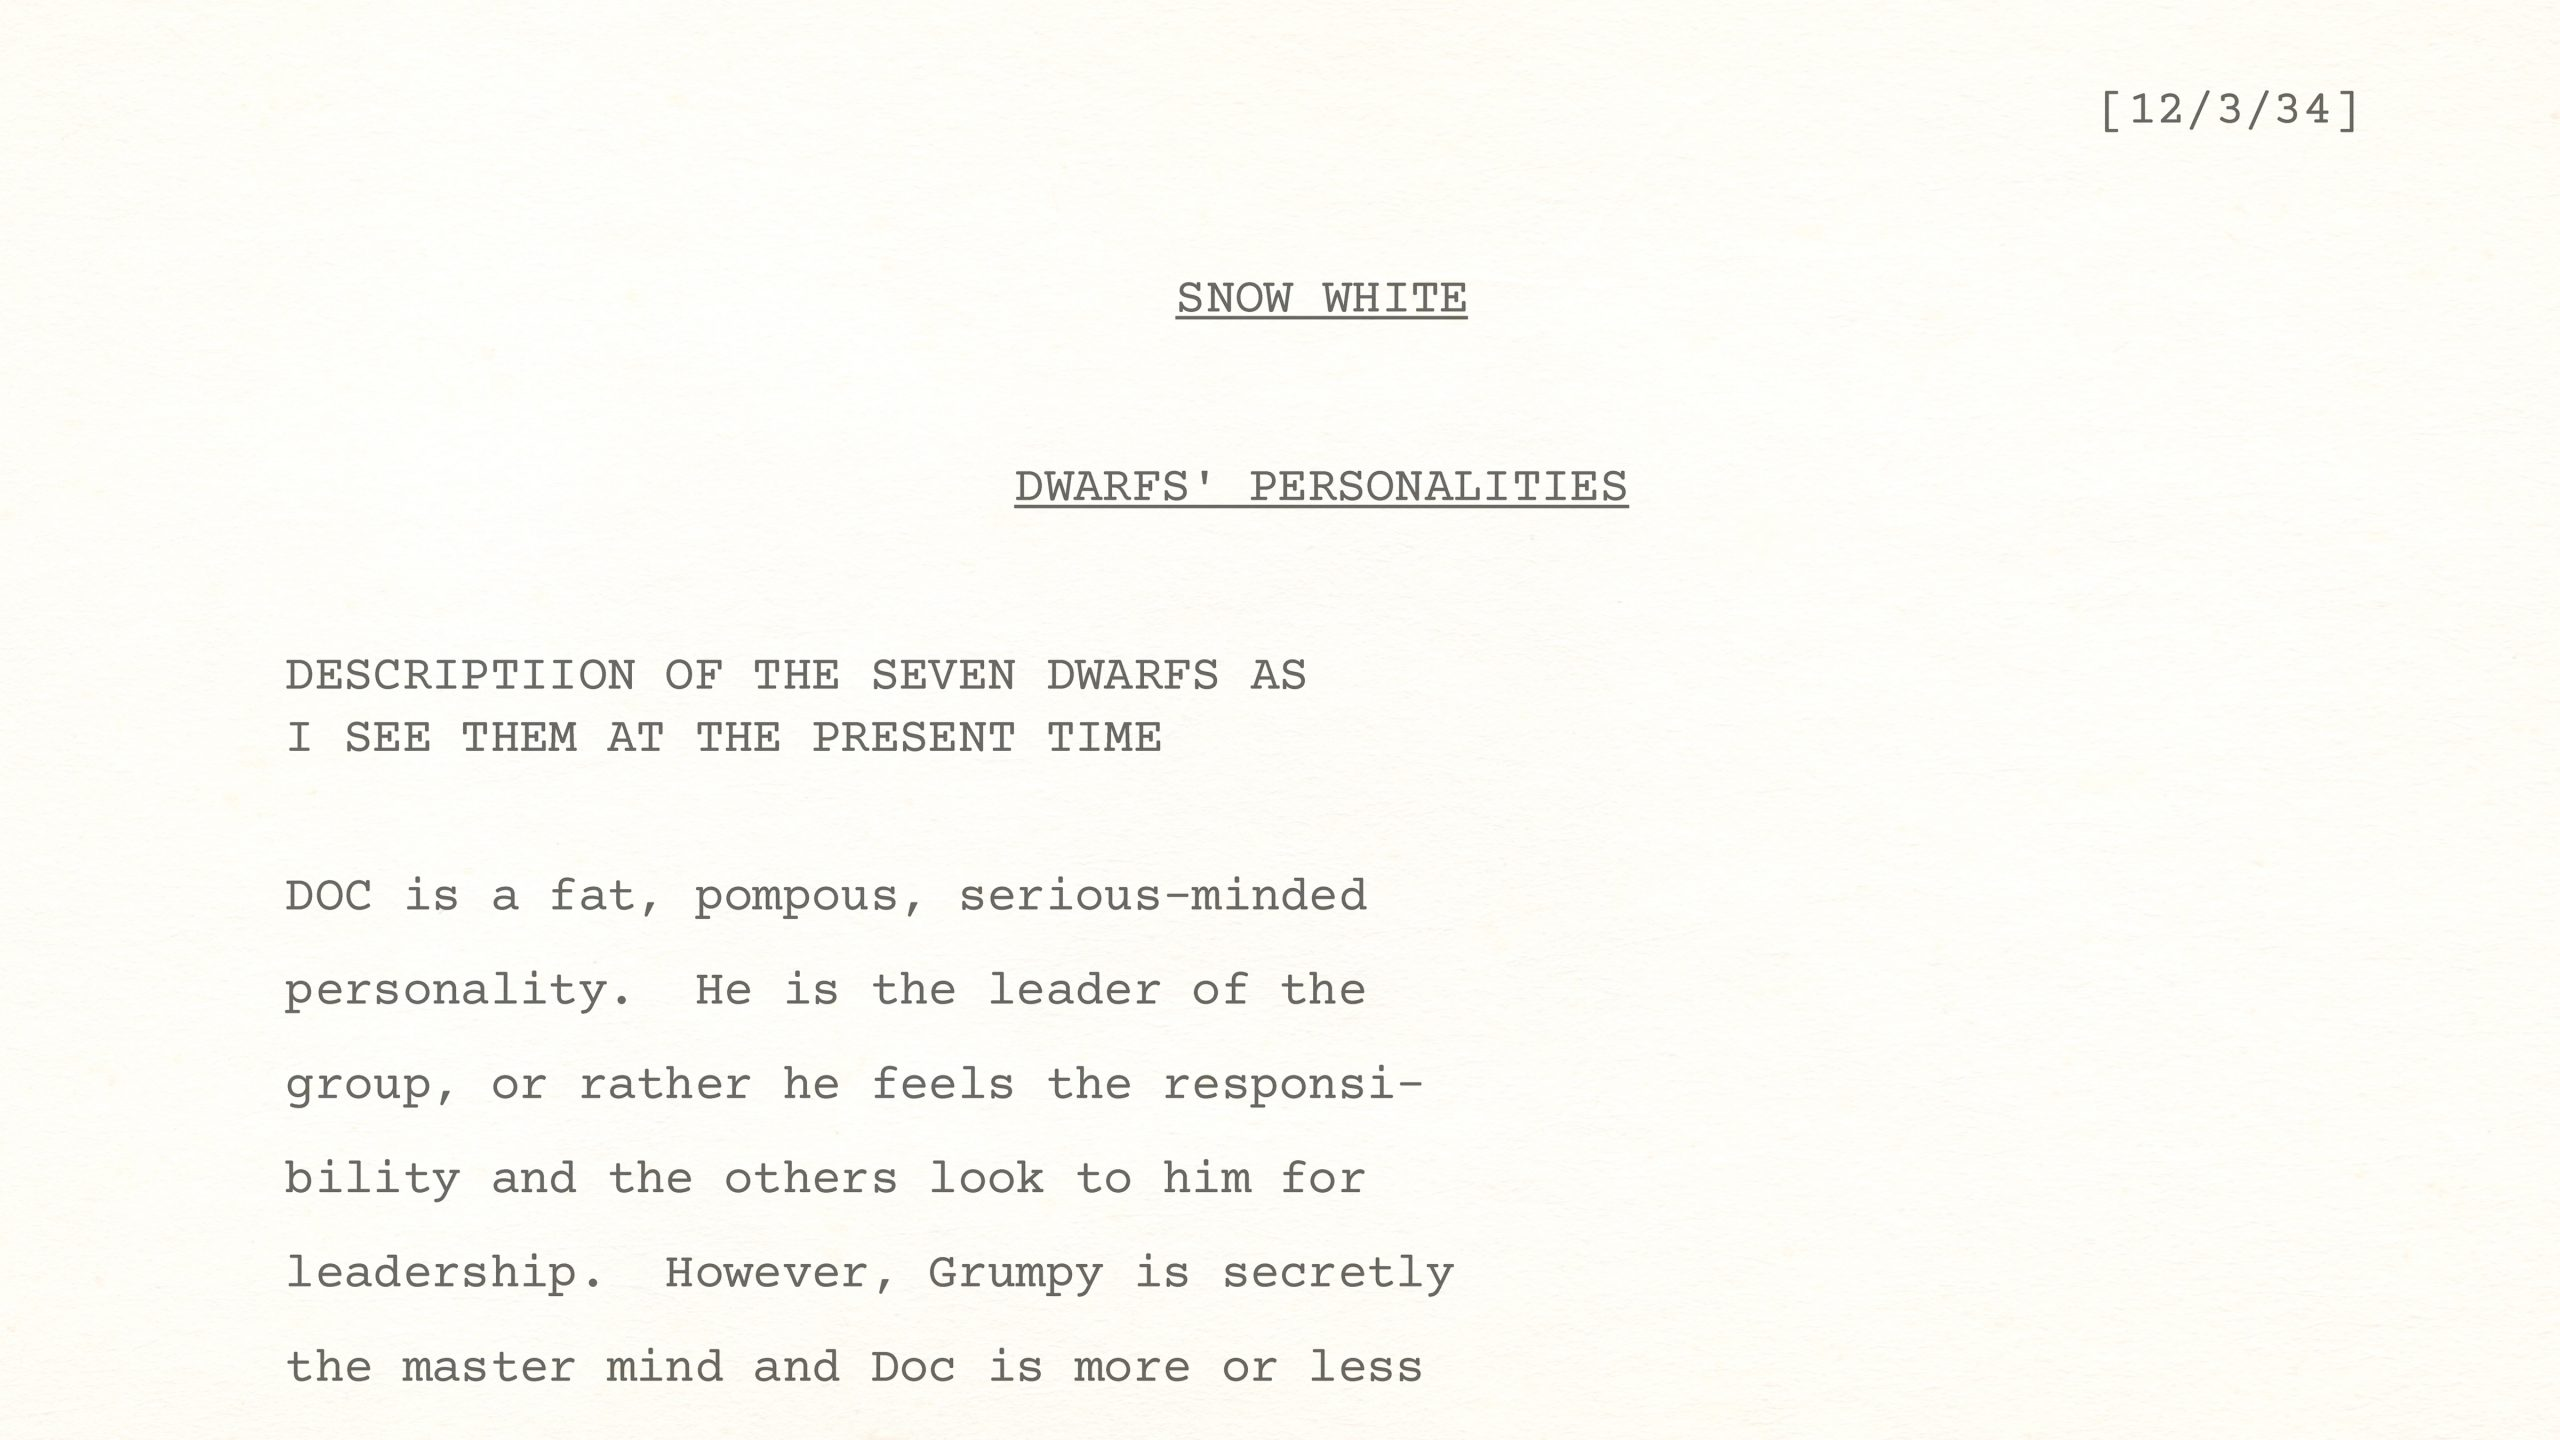 """Dwarfs' Personalities as Walt Sees Them at the """"Present Time,"""" being December 3rd, 1934"""